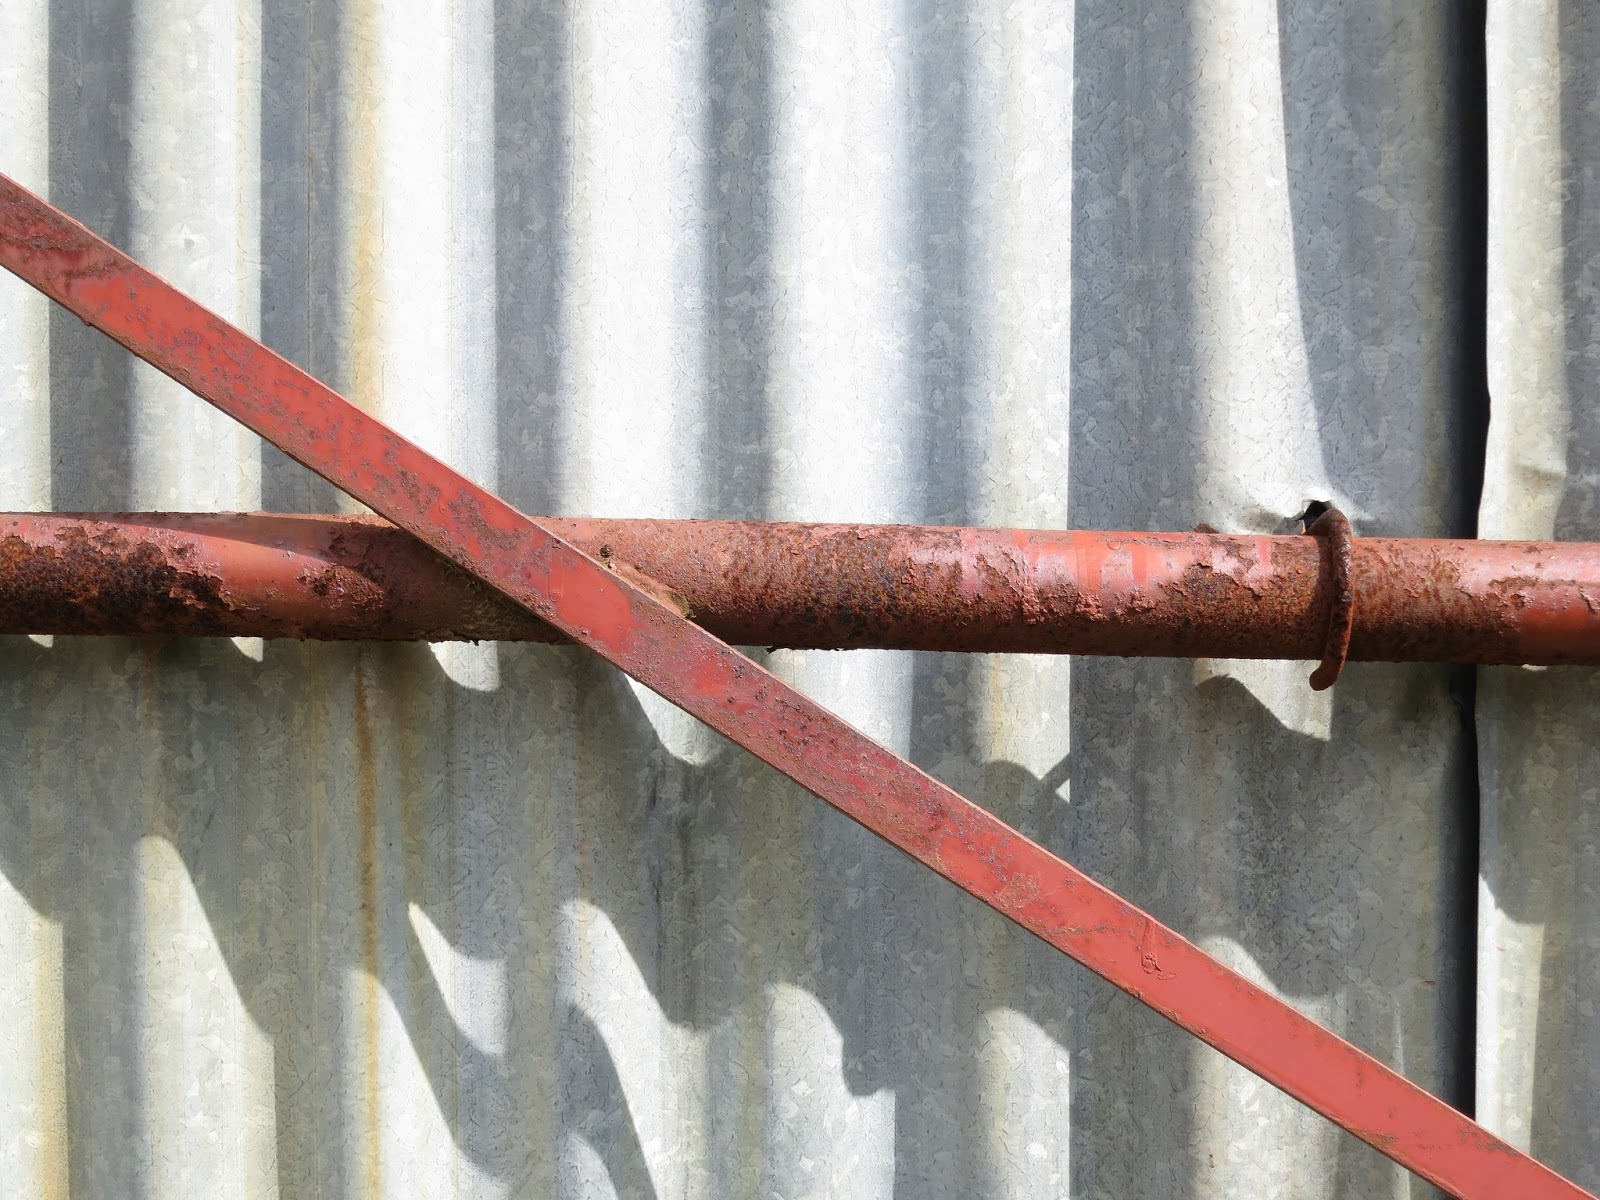 Corrugated iron wall of barn with rusty metal supports